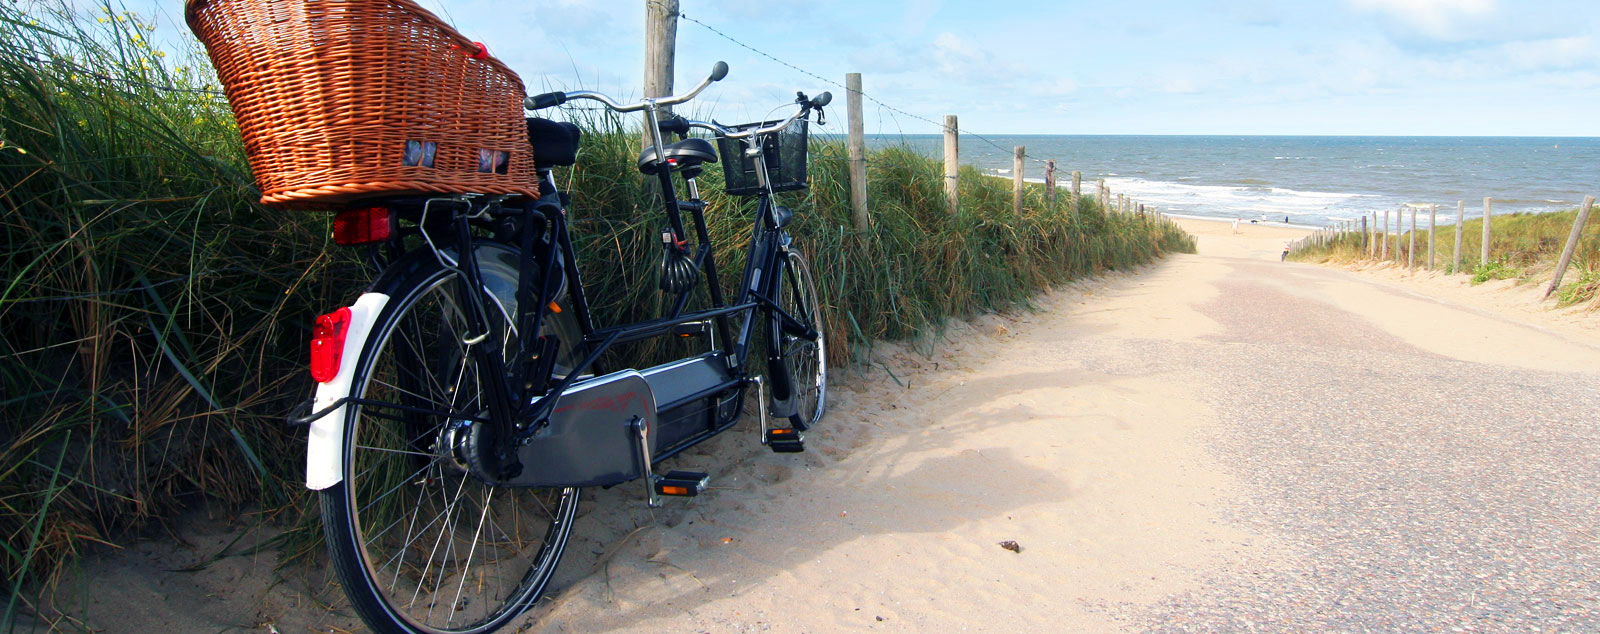 A tandem bike rests against the verge of a sandy path that leads down to the sea